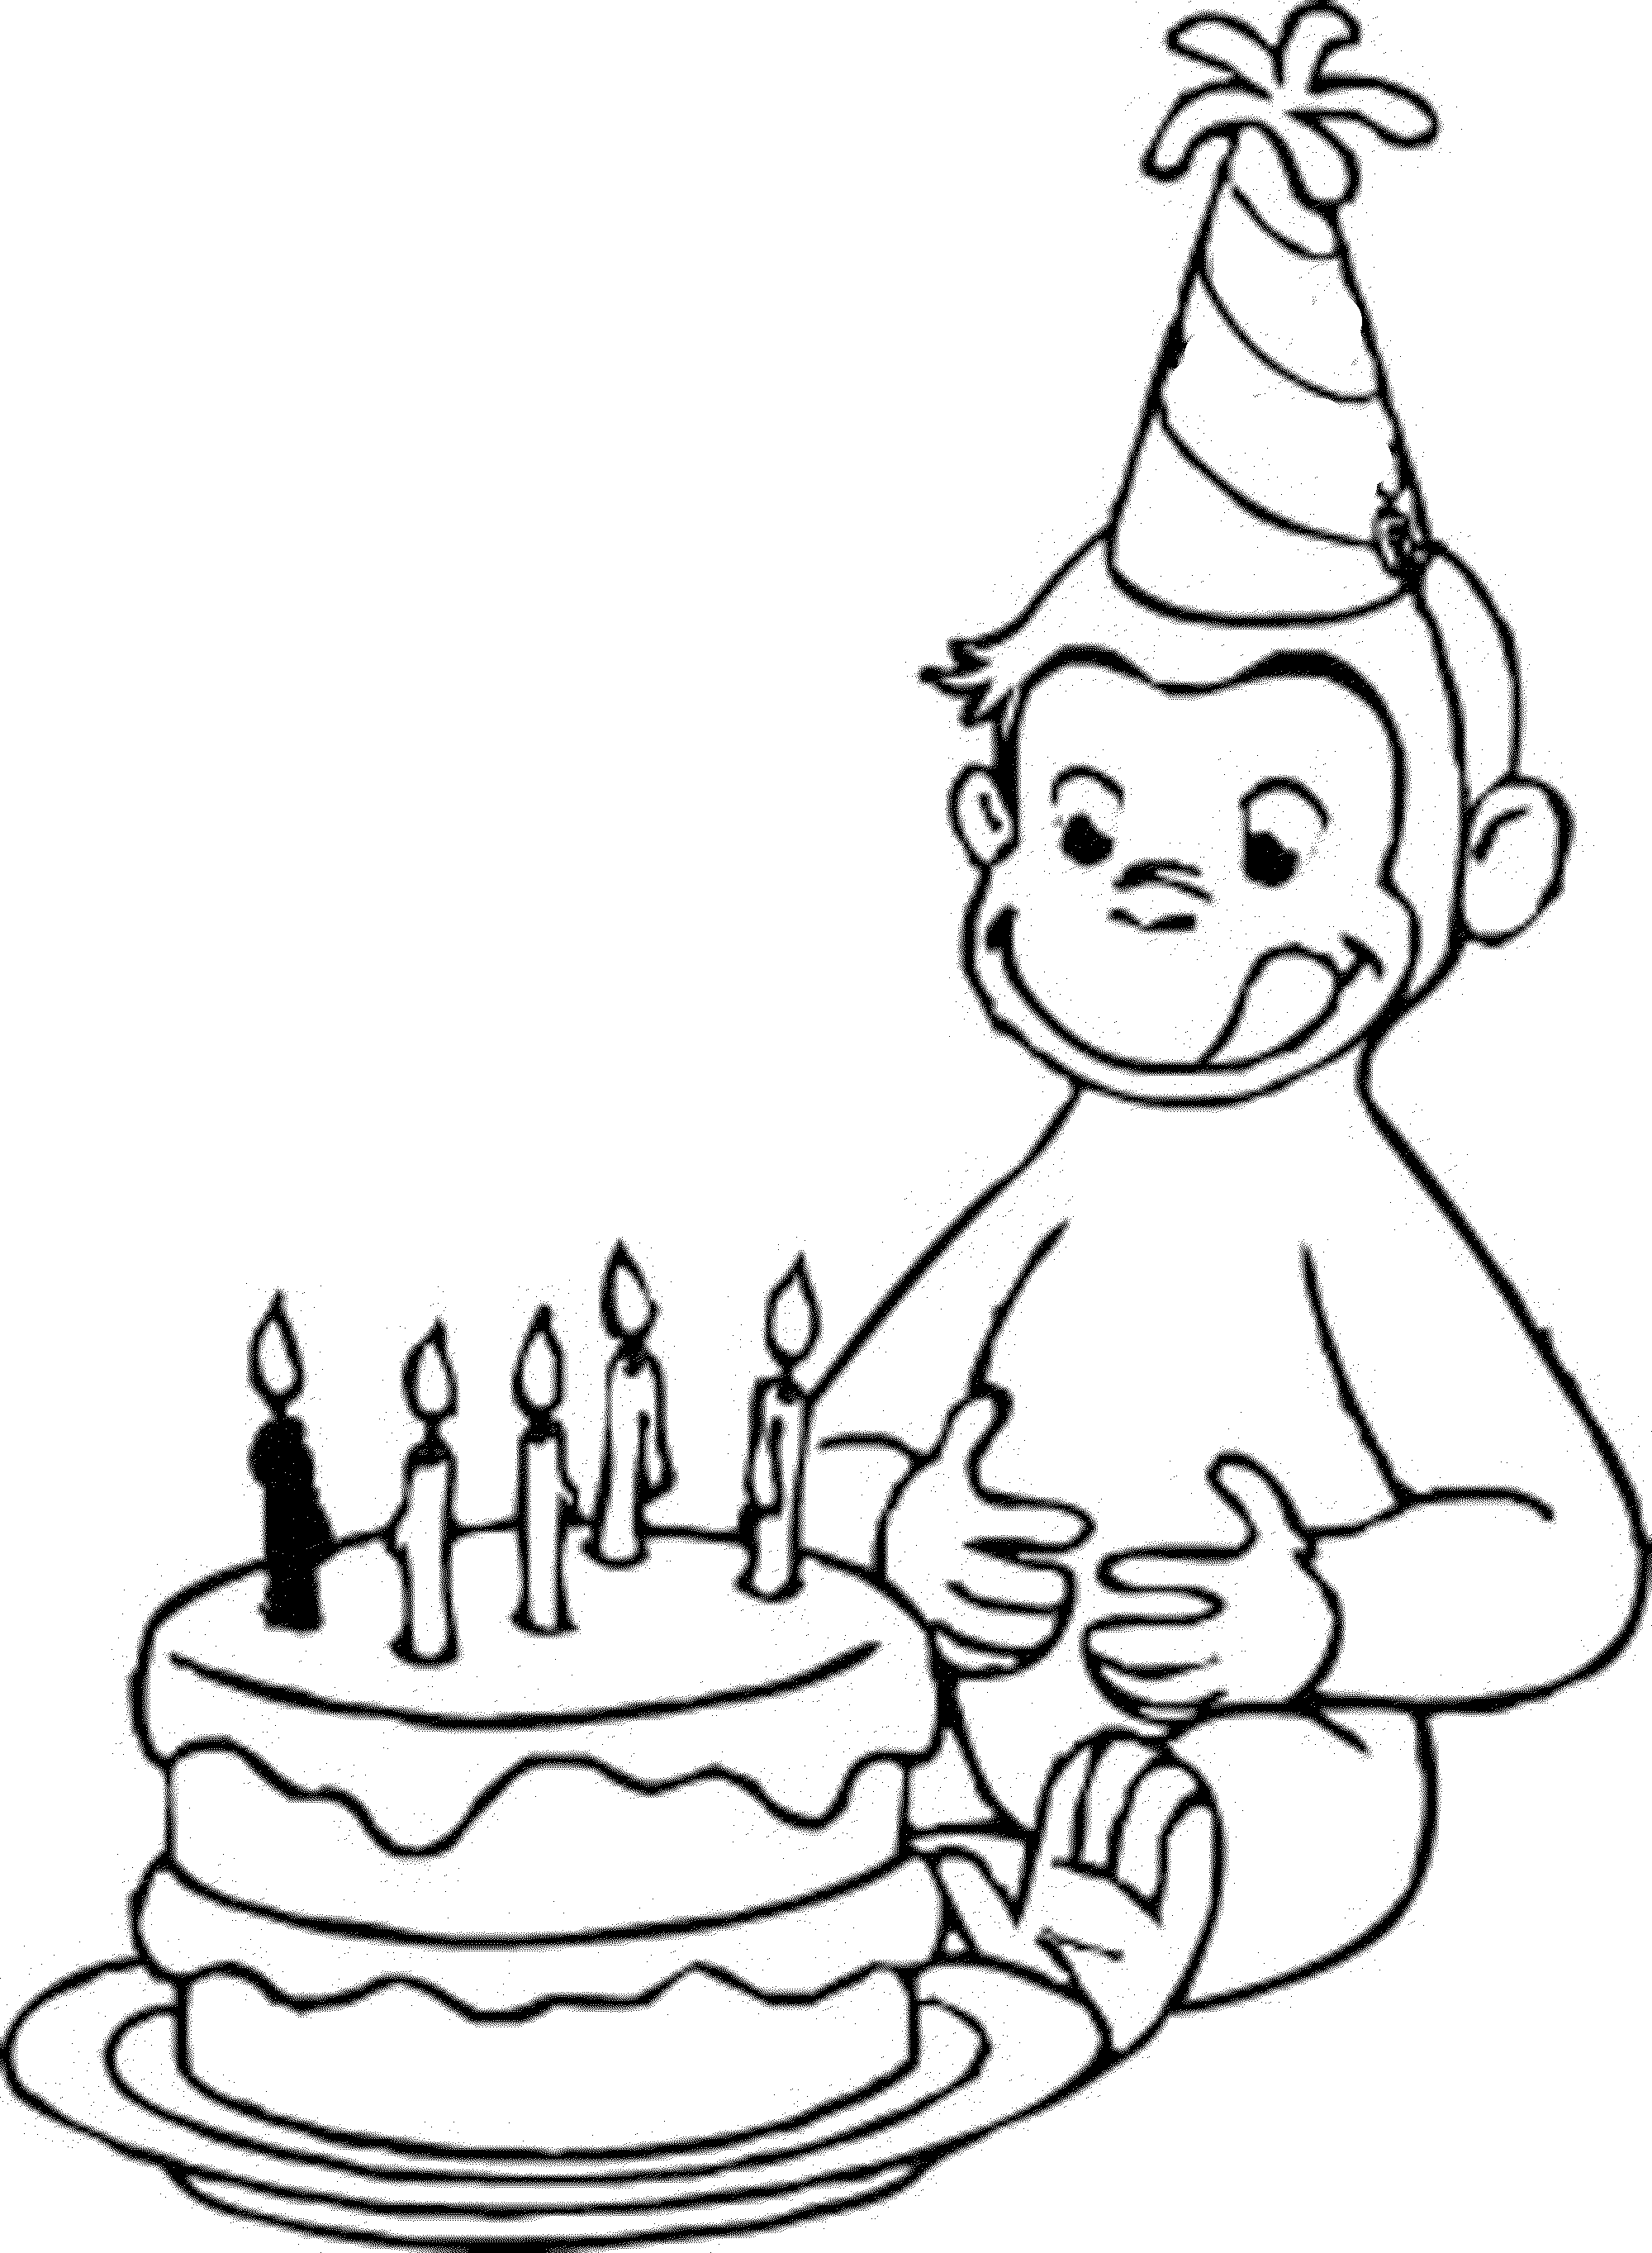 curious george coloring pages - photo#20